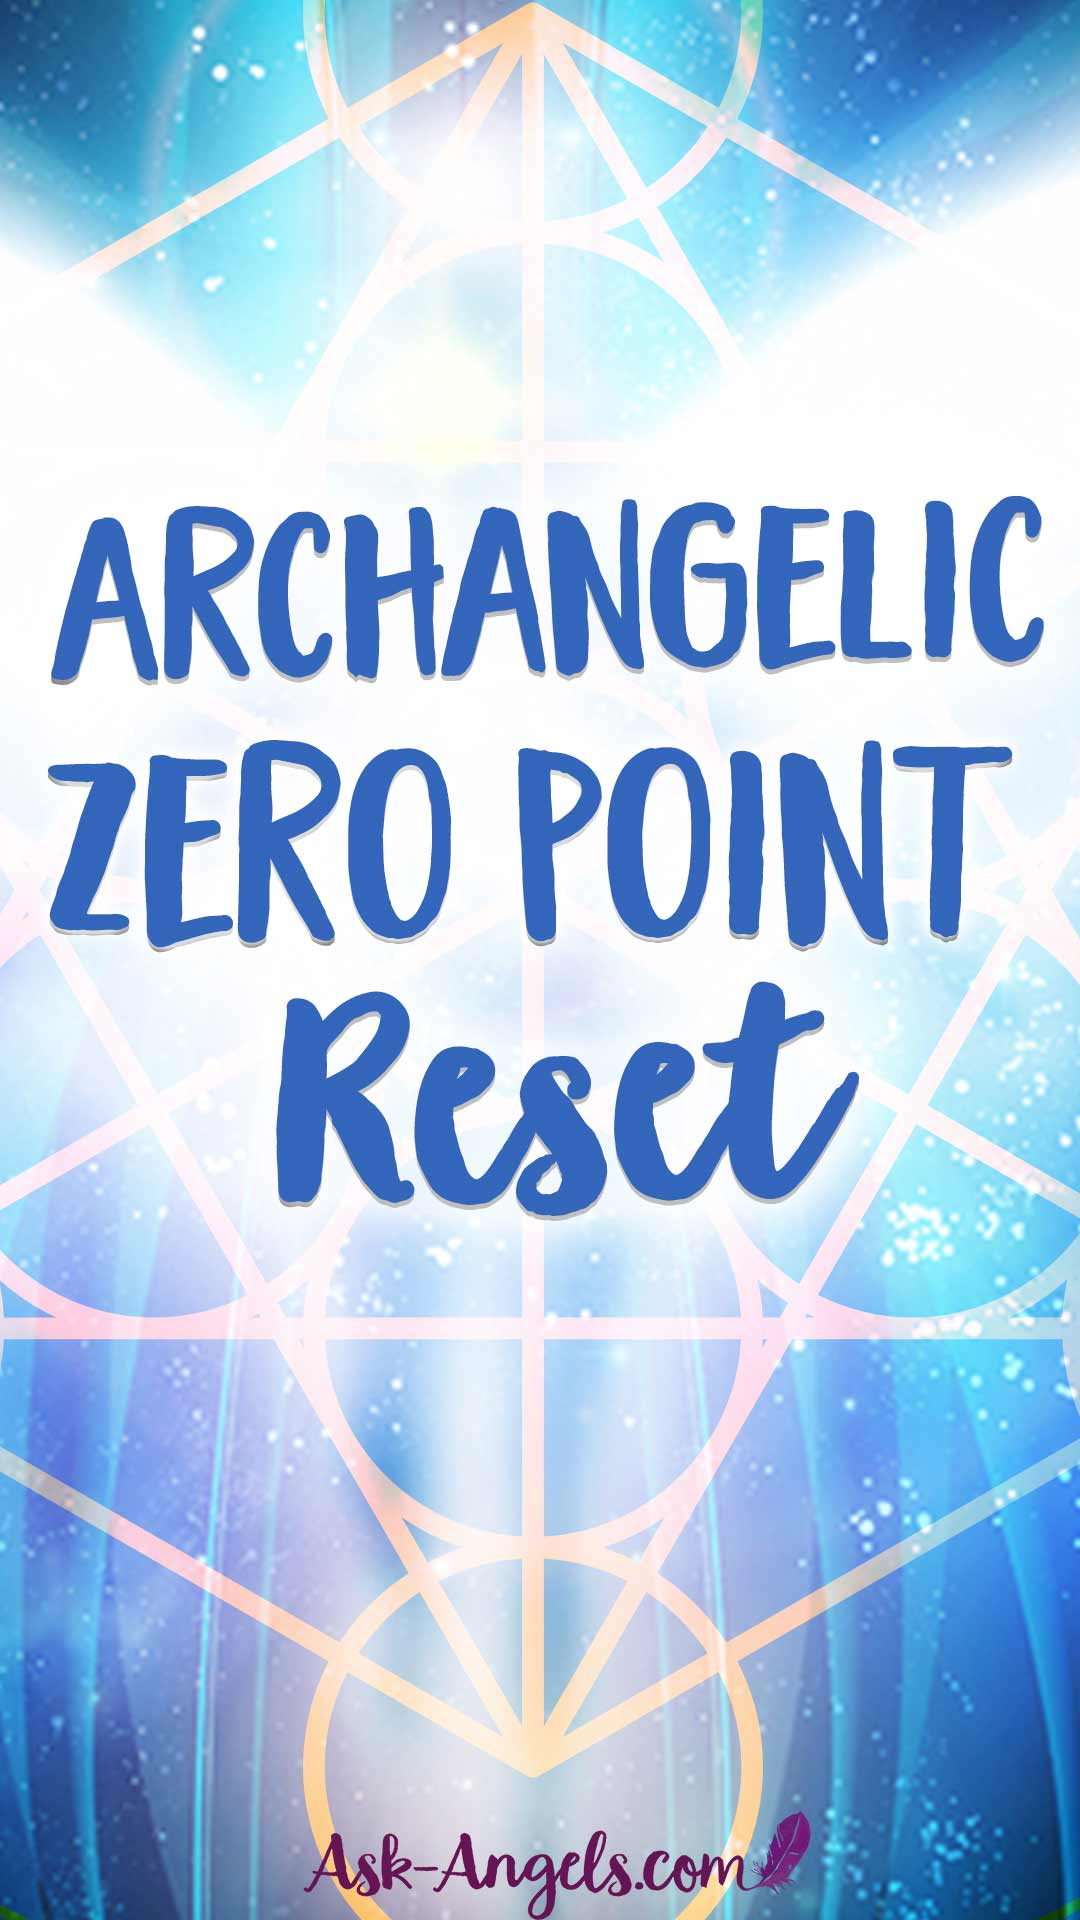 Archangelic Zero Point Reset